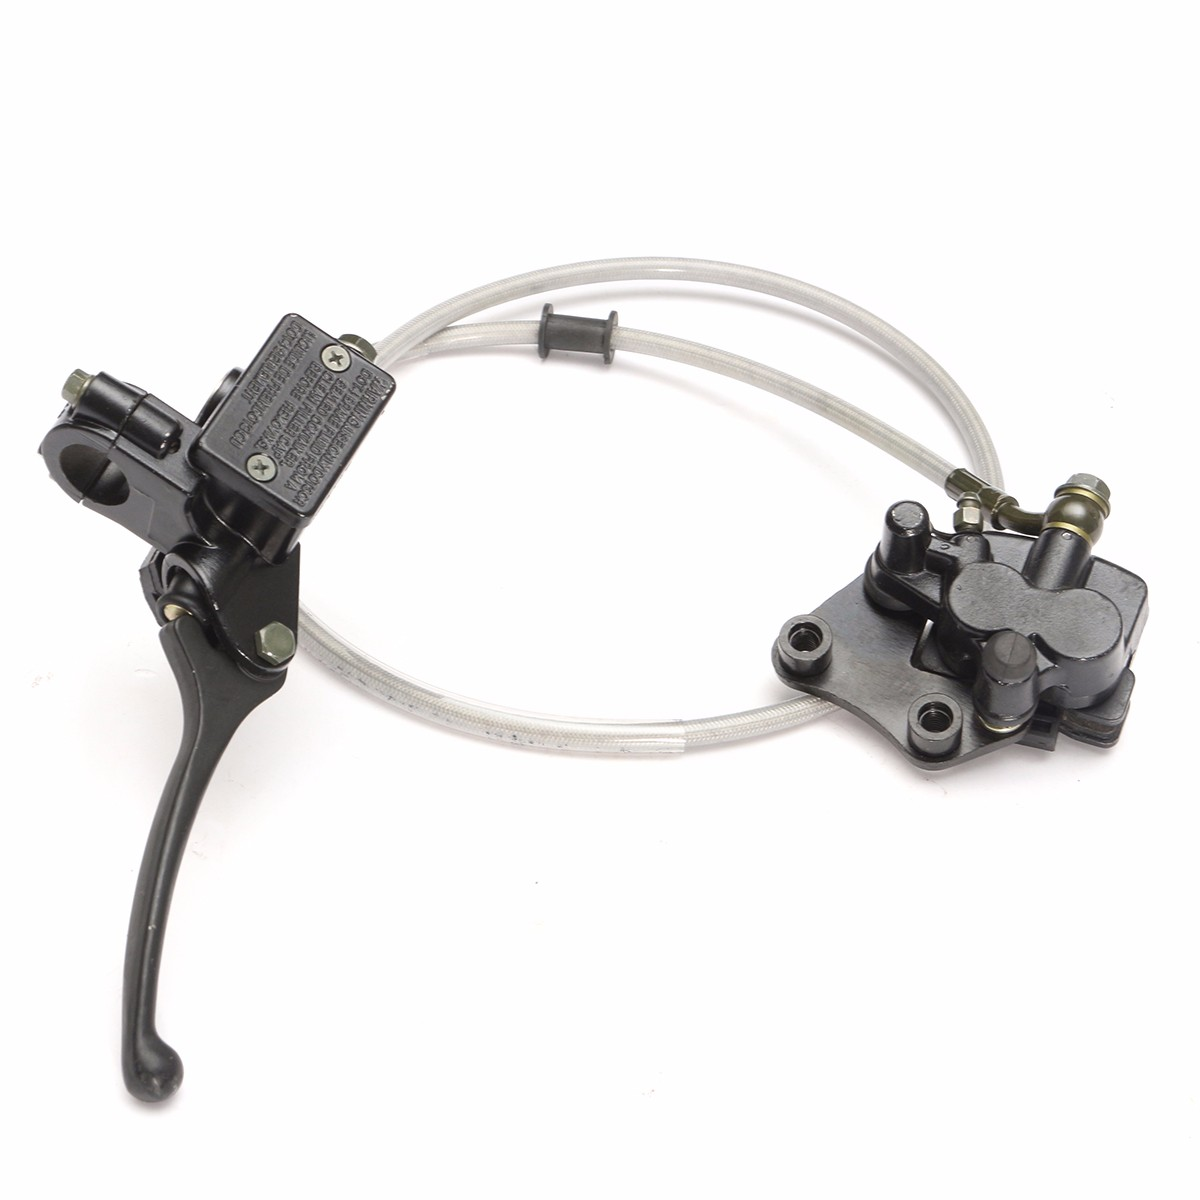 Pit Dirt Bike Front Hydraulic Brake Master Cylinder FOR 110cc 125cc 140cc CRF70 motorcycle rear hydraulic brake master cylinder pump for 50cc 70cc 110cc 125cc 150cc 250cc thumpstar atv pit pro dirt bike